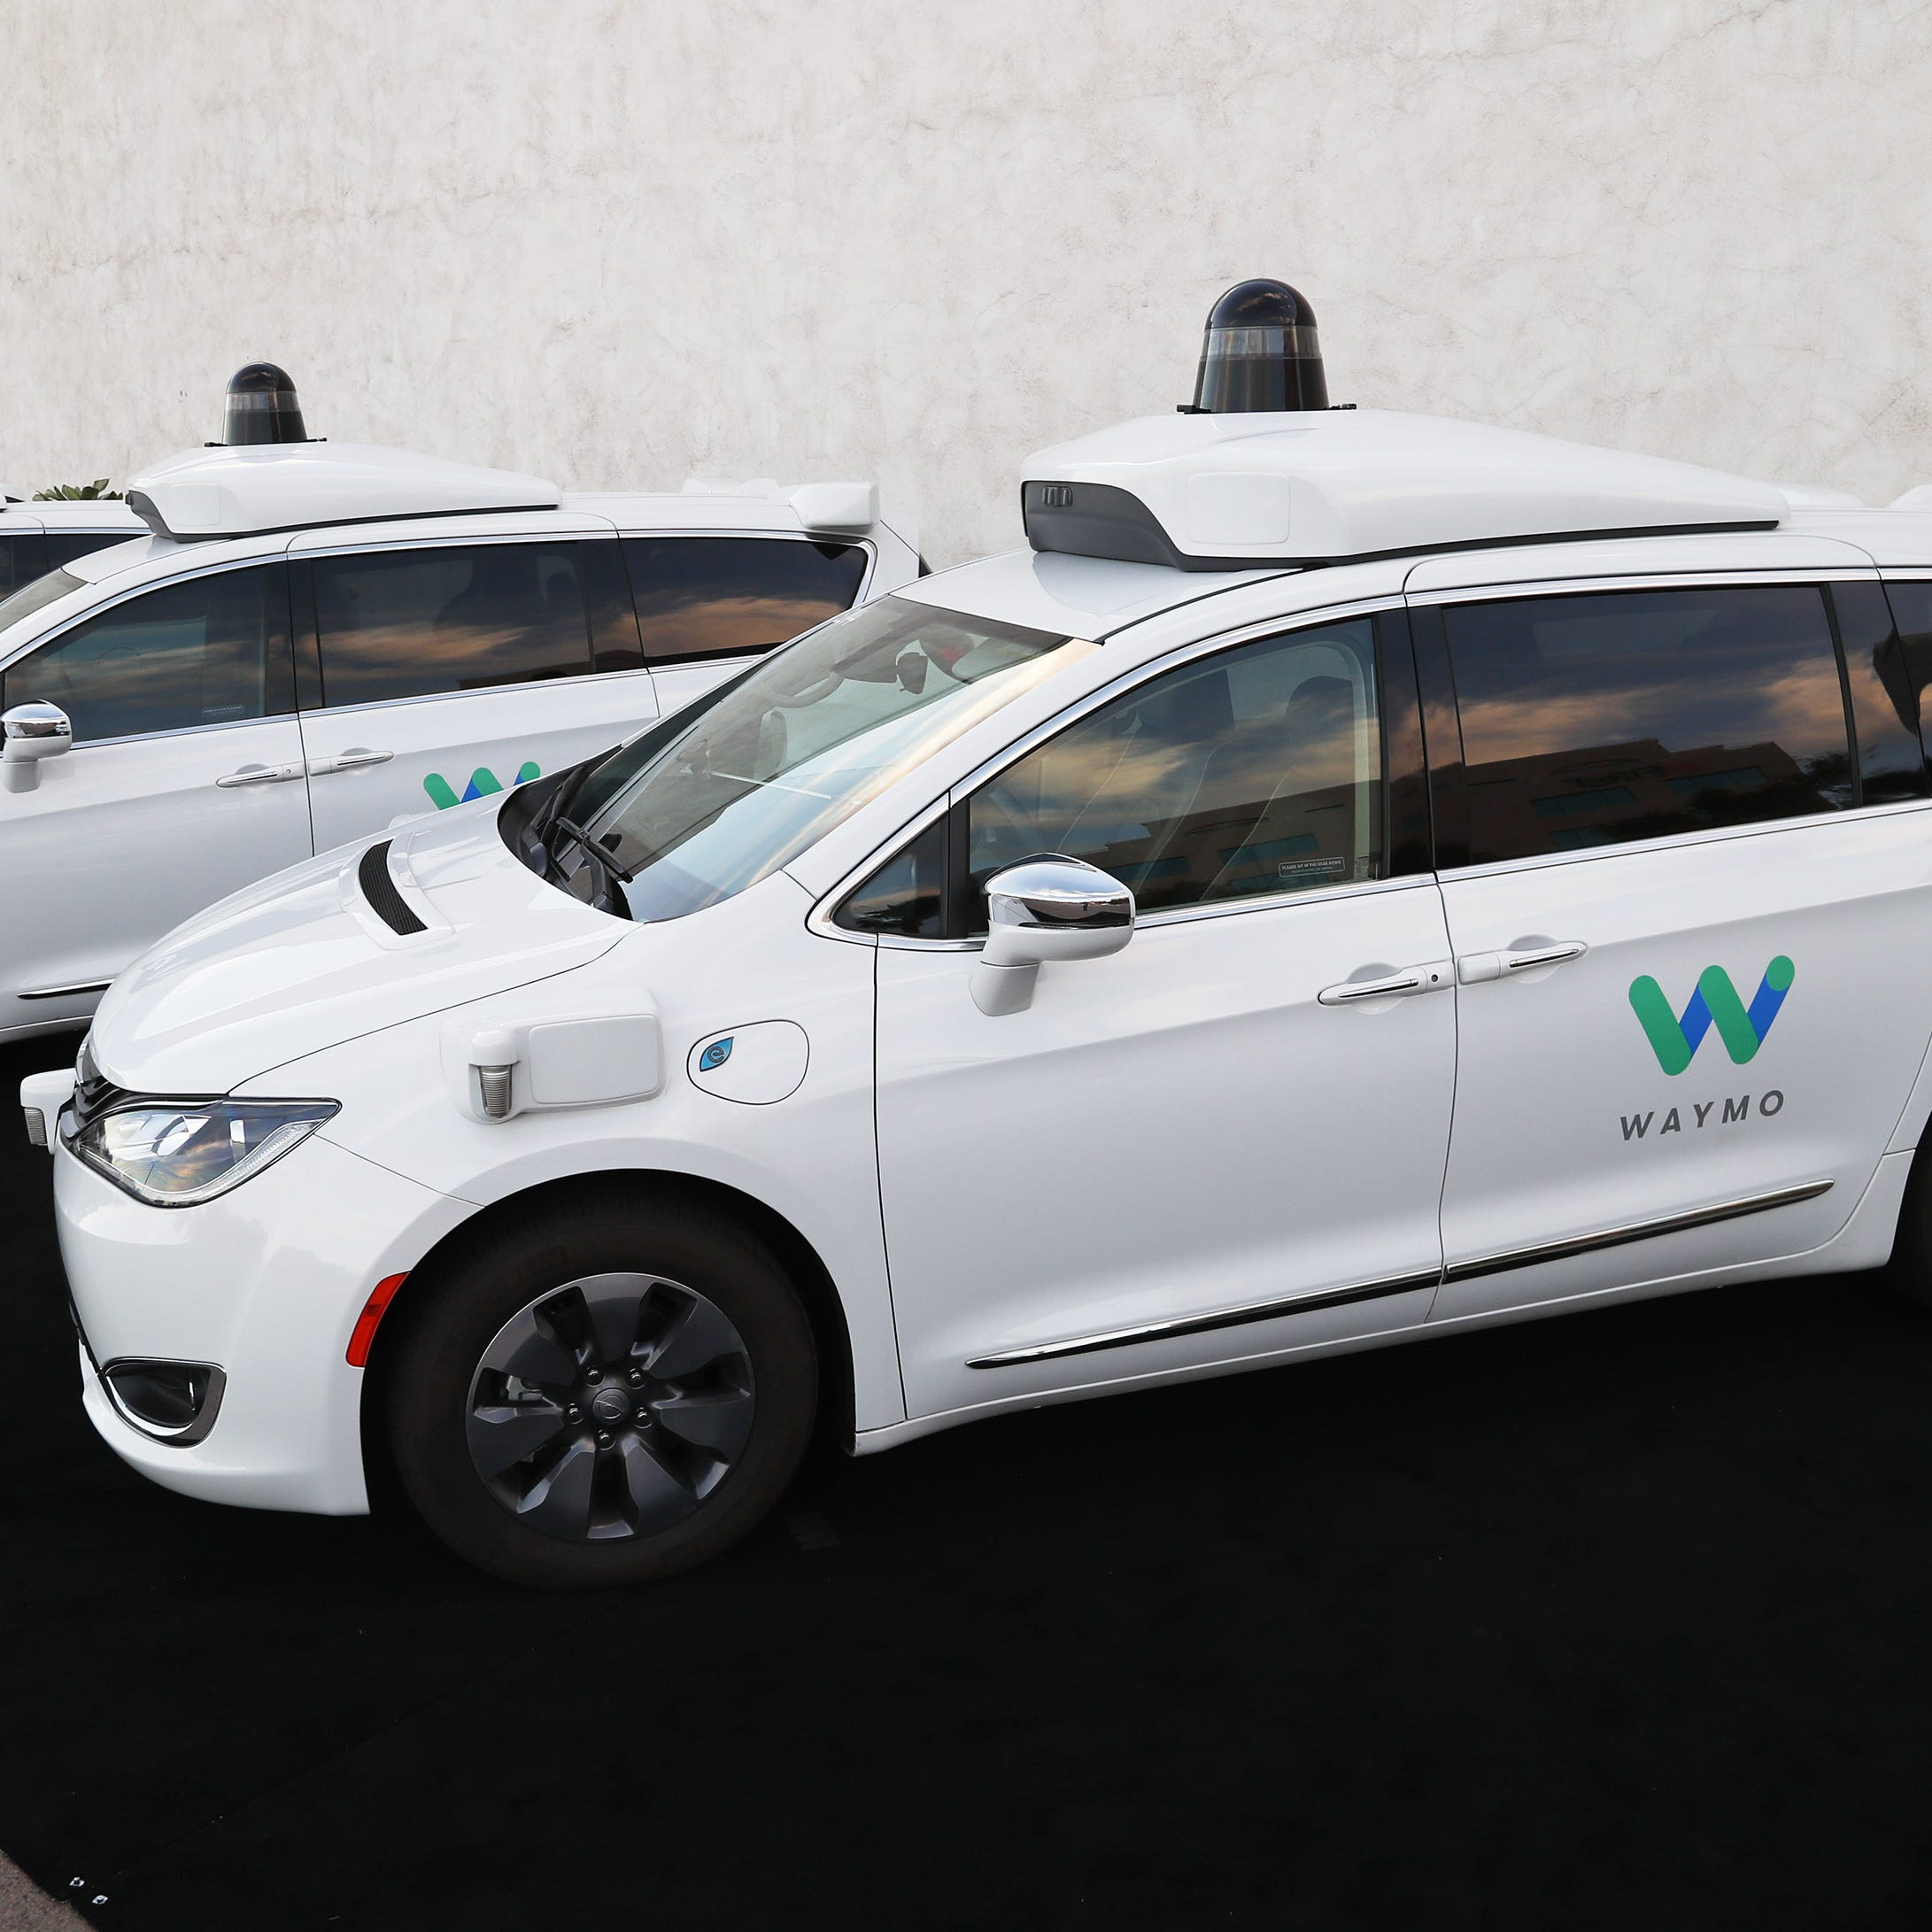 Waymo drivers were refueling vans with engines running until a whistleblower complained